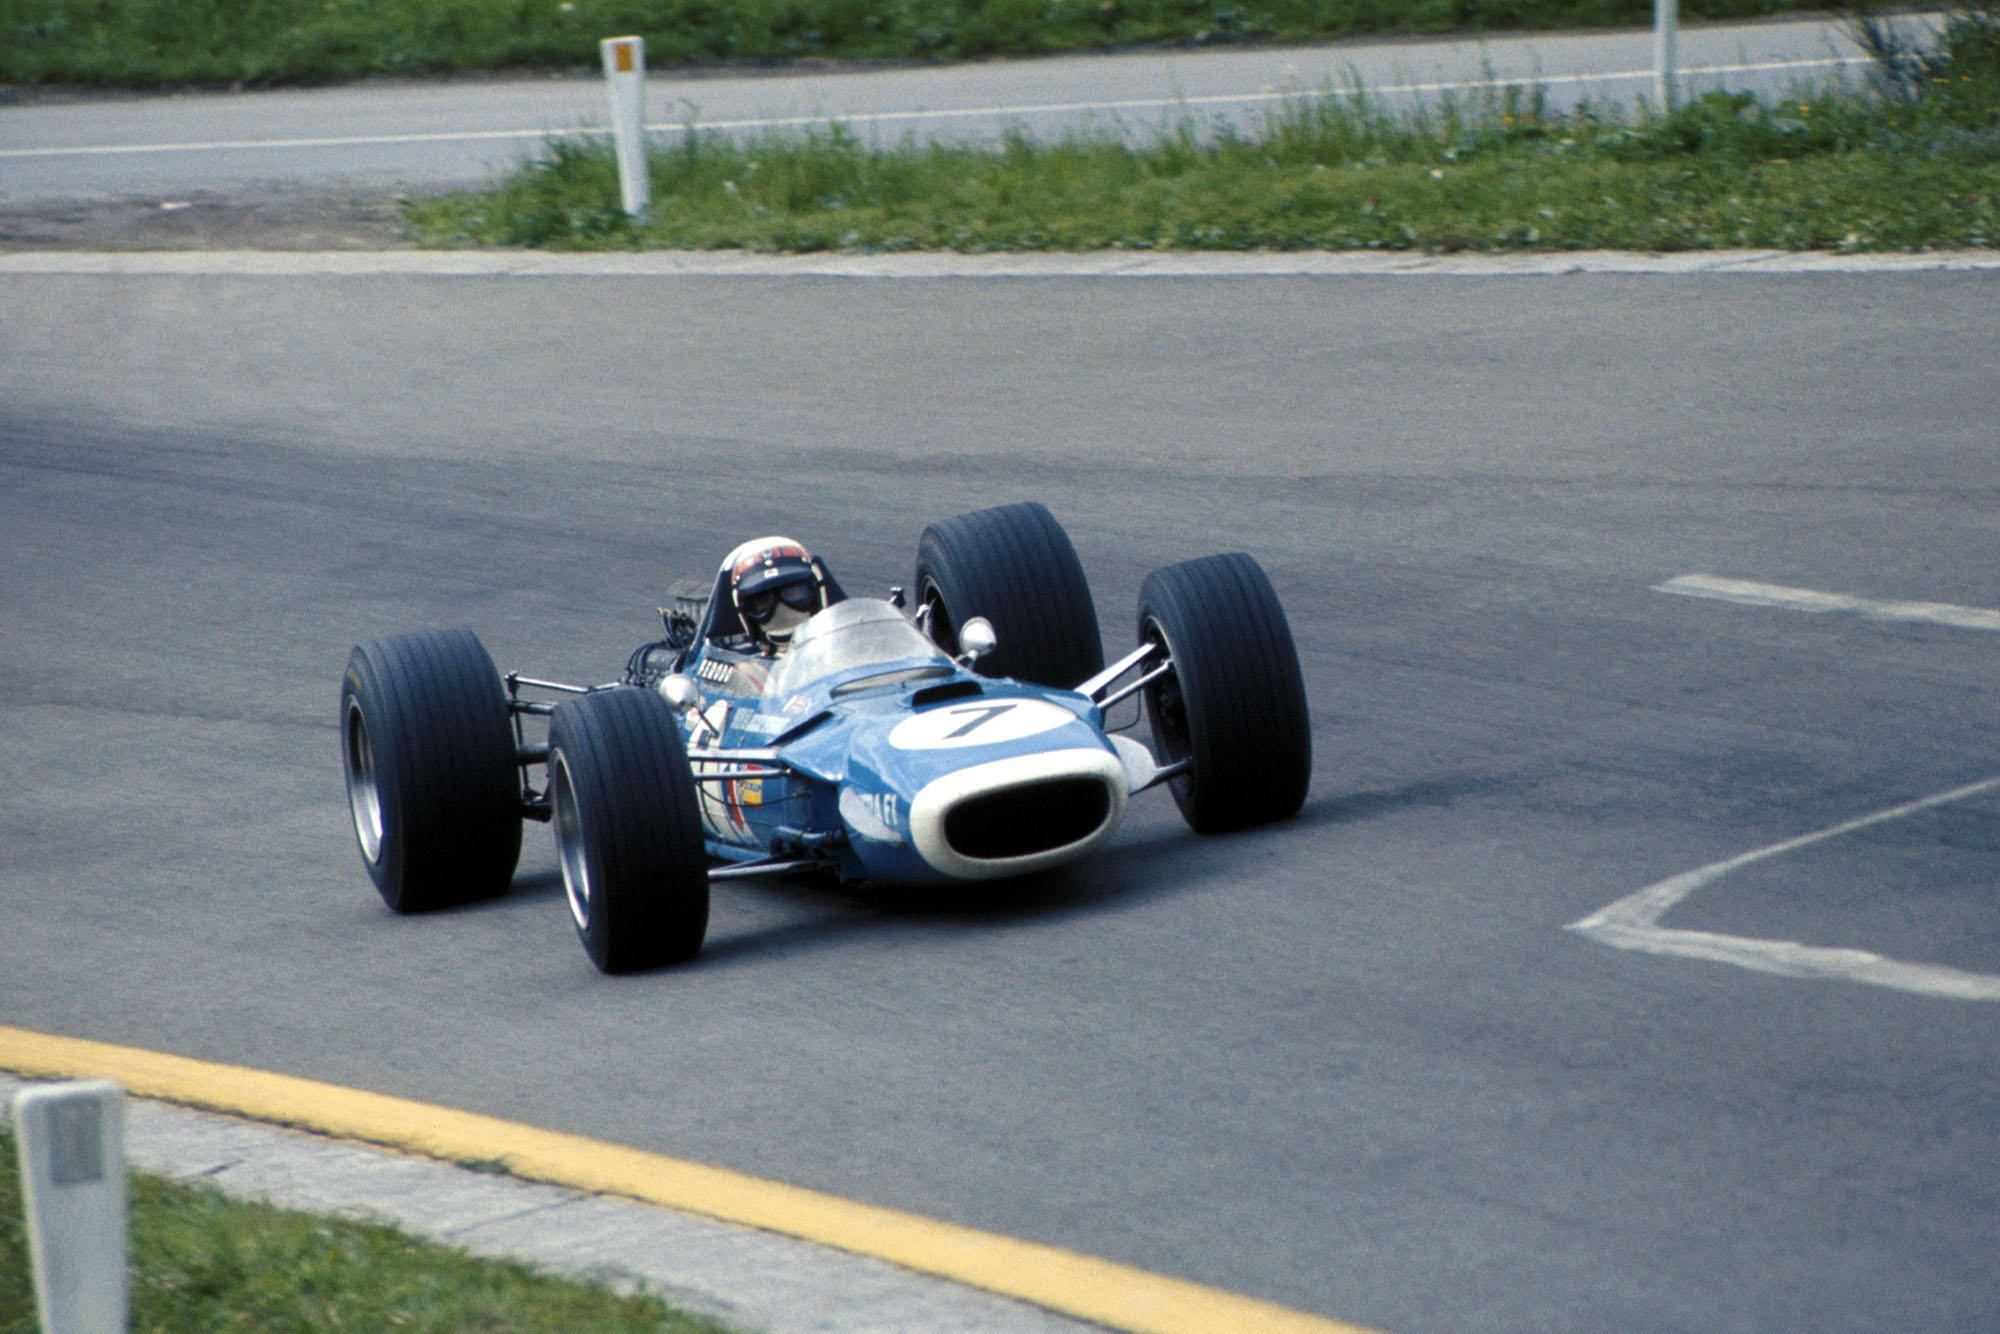 Jackie Stewart (GBR) Matra Cosworth MS10, finished the race in fourth place. Formula One World Championship, Rd4, Belgian Grand Prix, Spa-Francorchamps, Belgium, 9 June 1968.